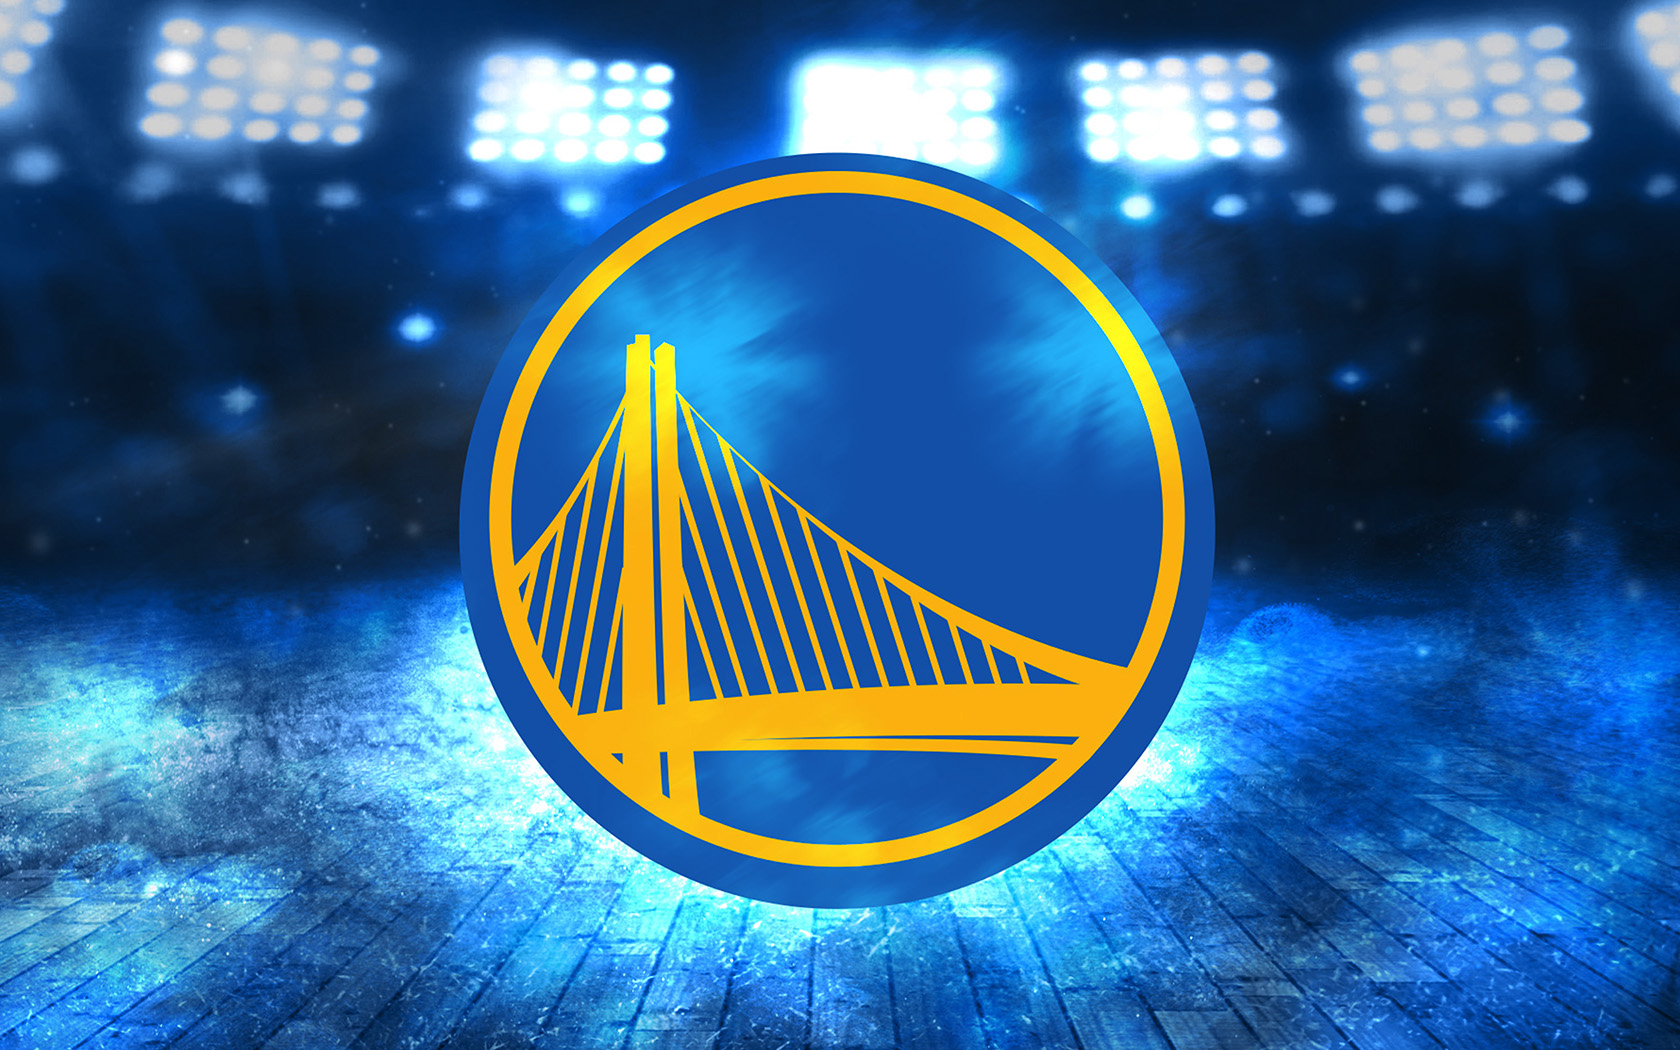 Cute Wallpaper For Androids Ar86 Golden State Warriors Logo Nba Sports Art